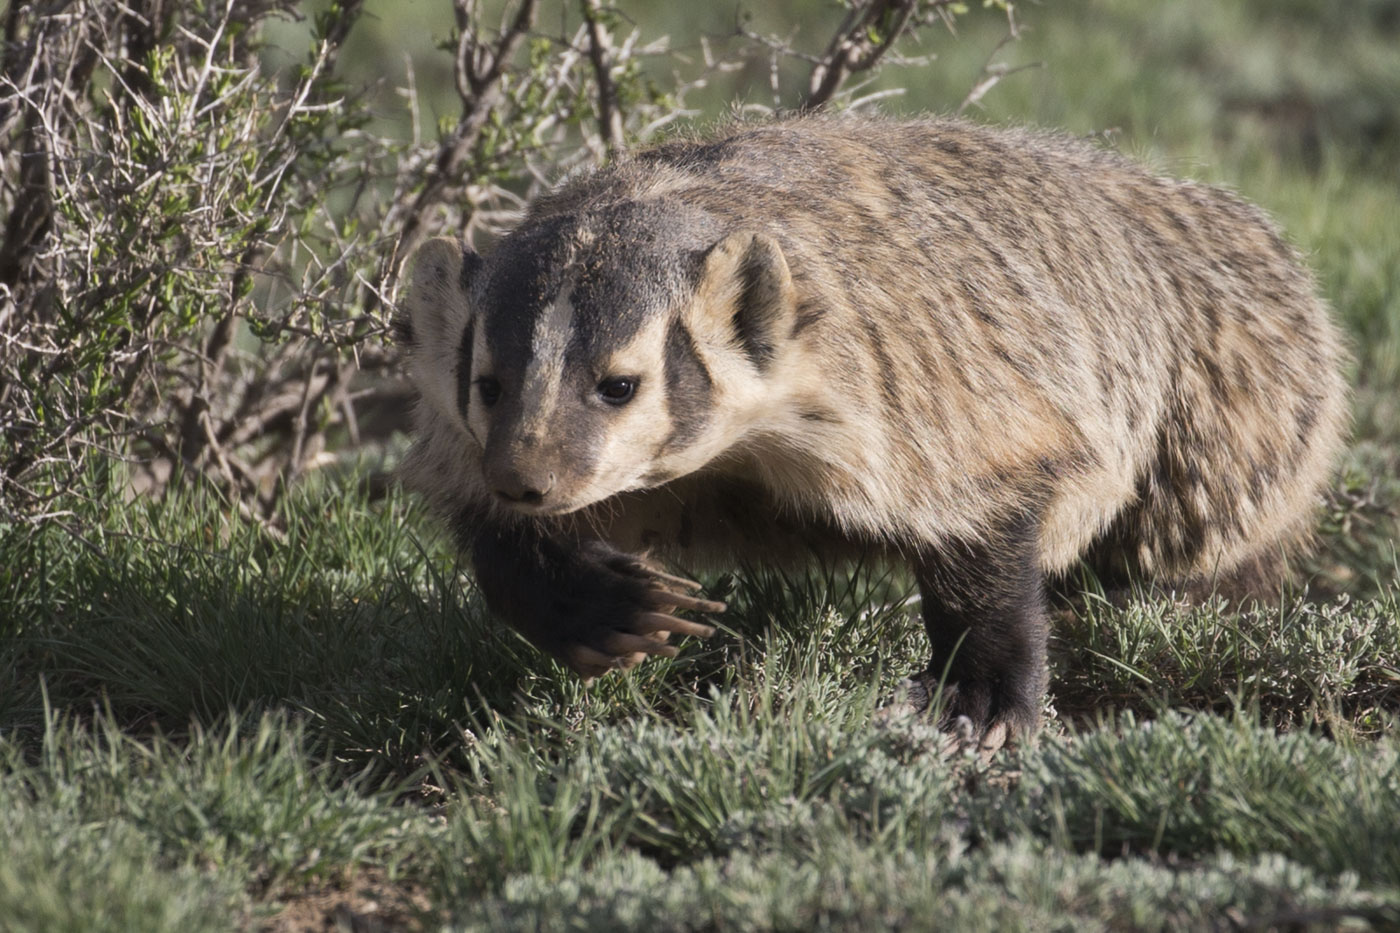 Badger, Arapaho National Wildlife Refuge